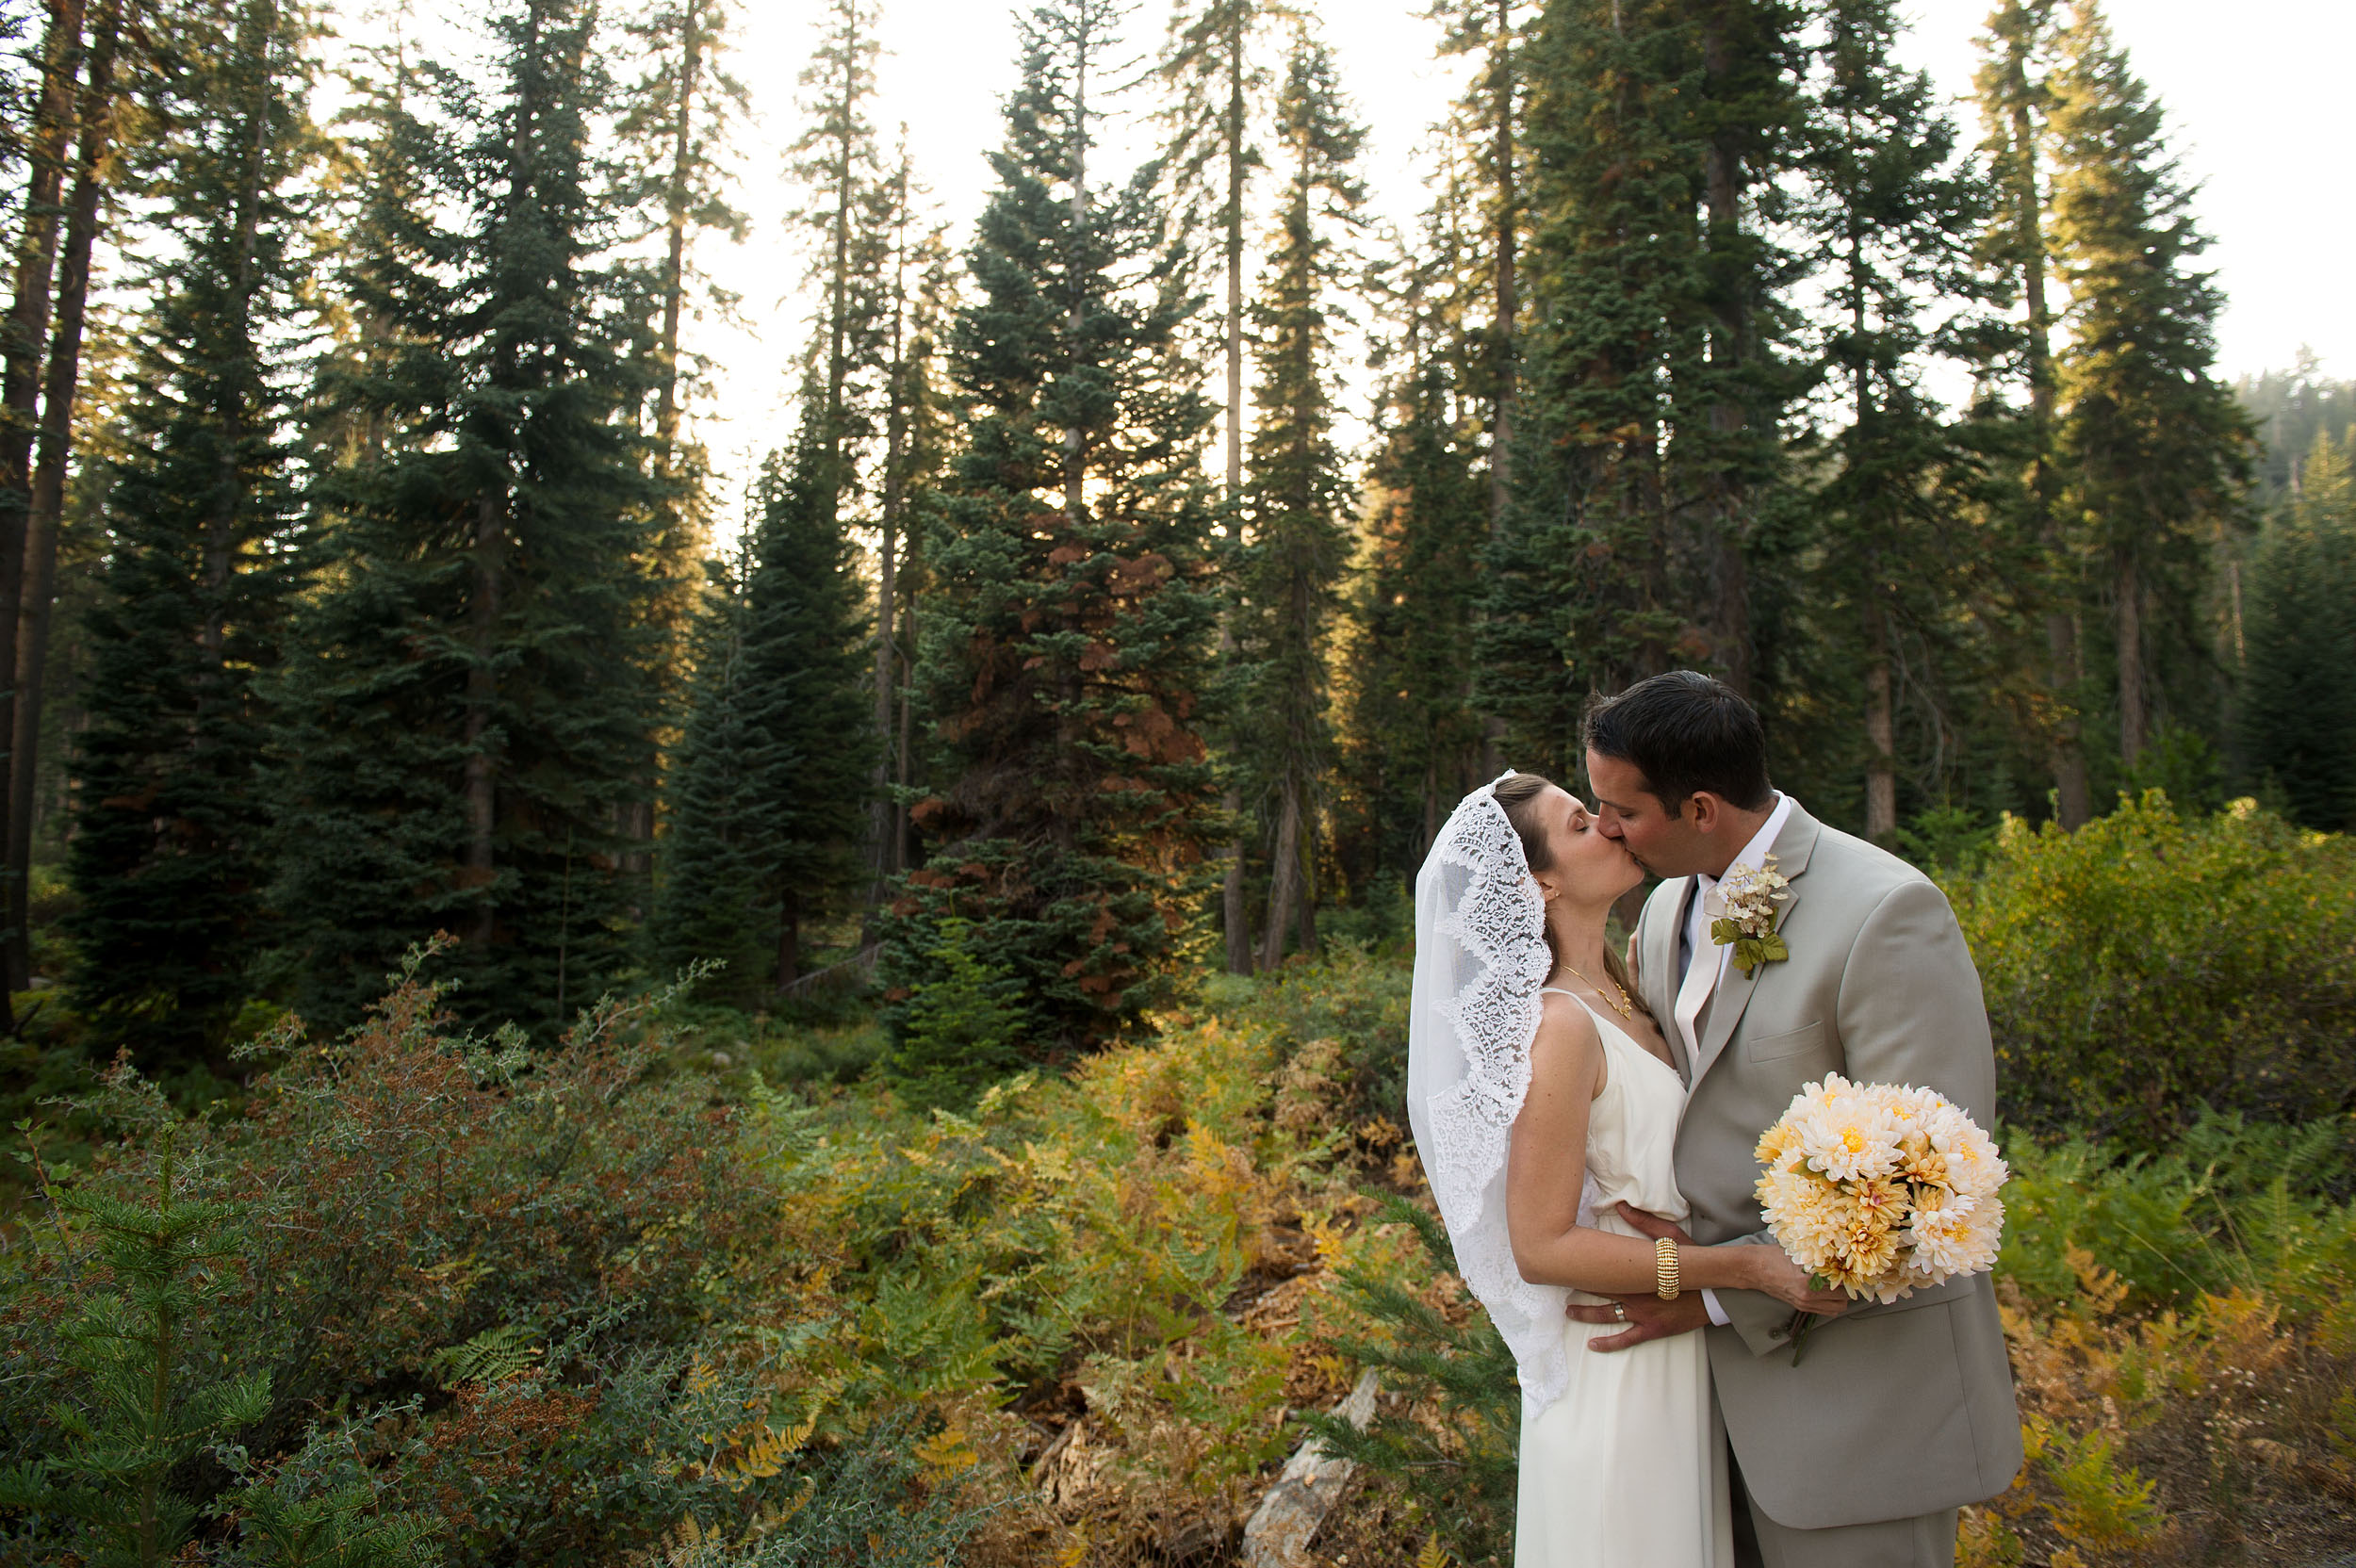 Bride and groom kissing at the Wuksachi Lodge at Sequoia and Kings Canyon National Parks.